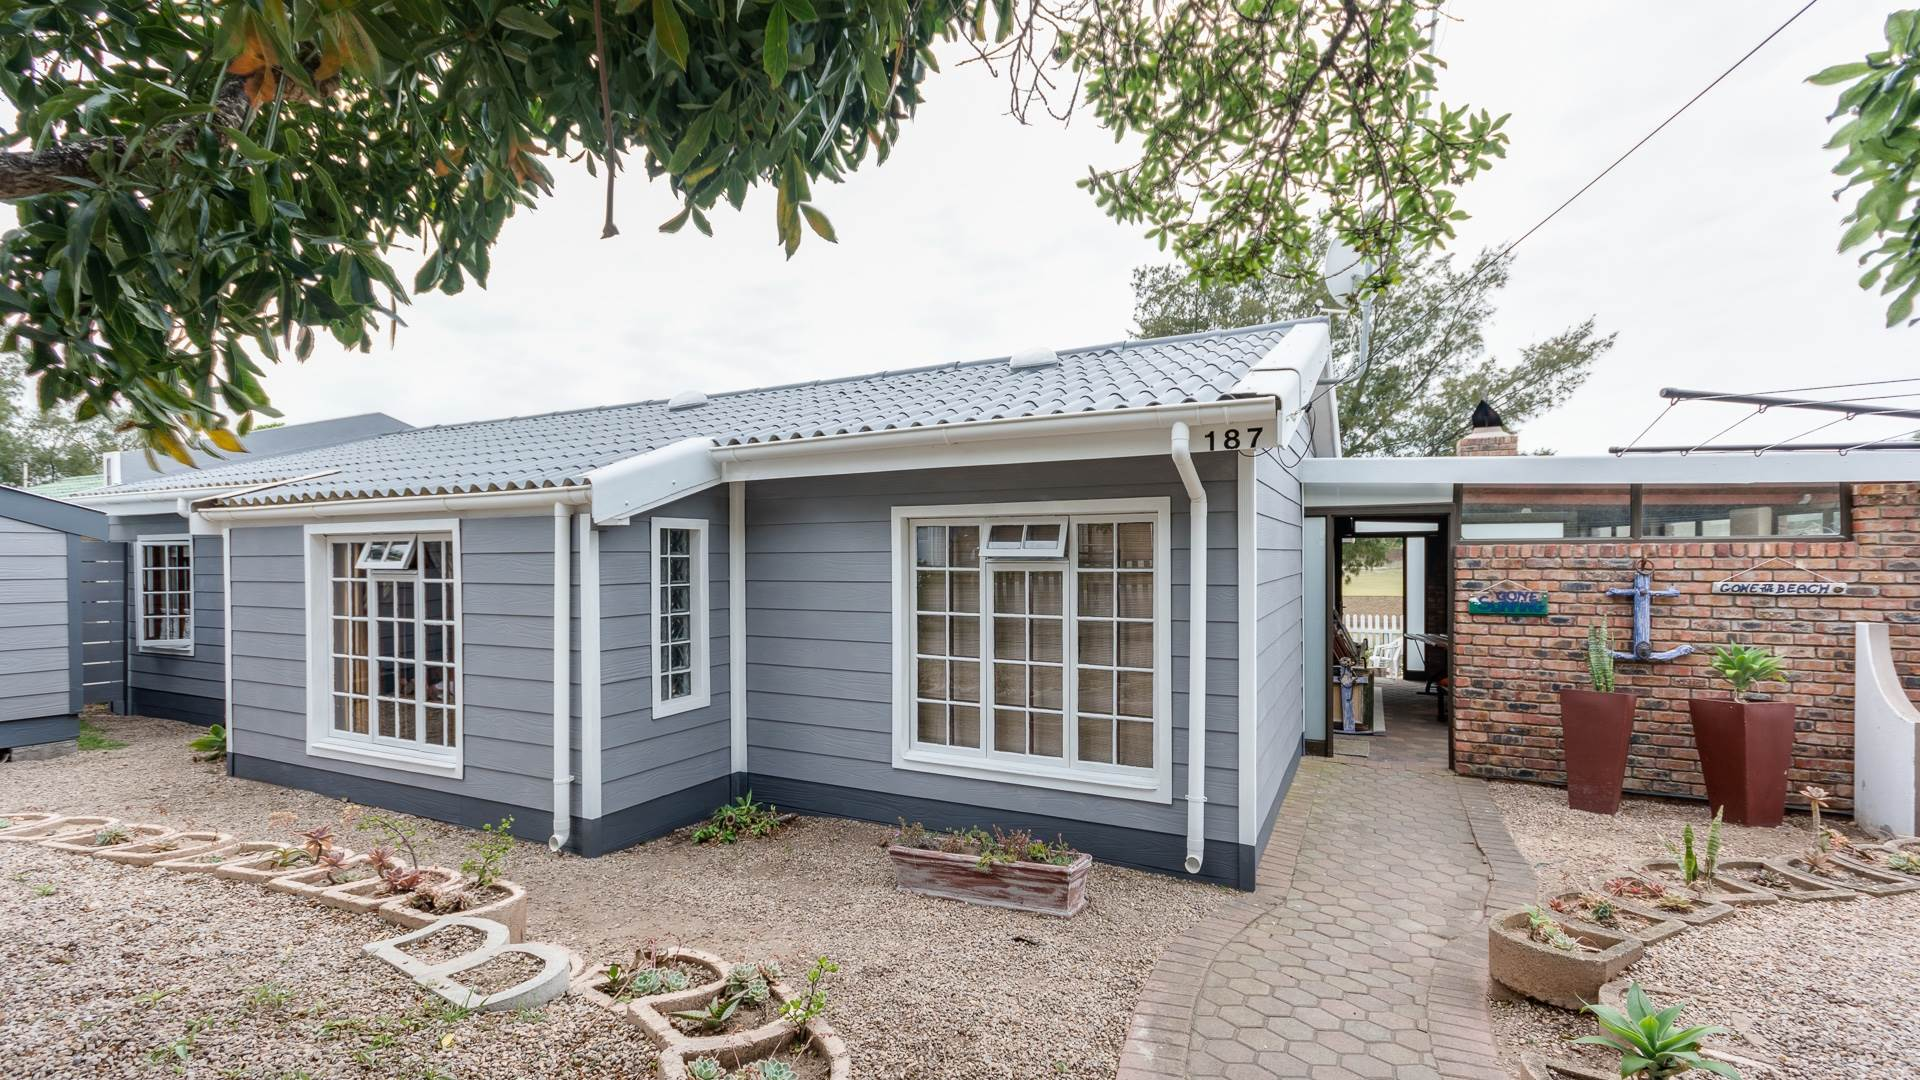 5 BedroomHouse For Sale In Hartenbos